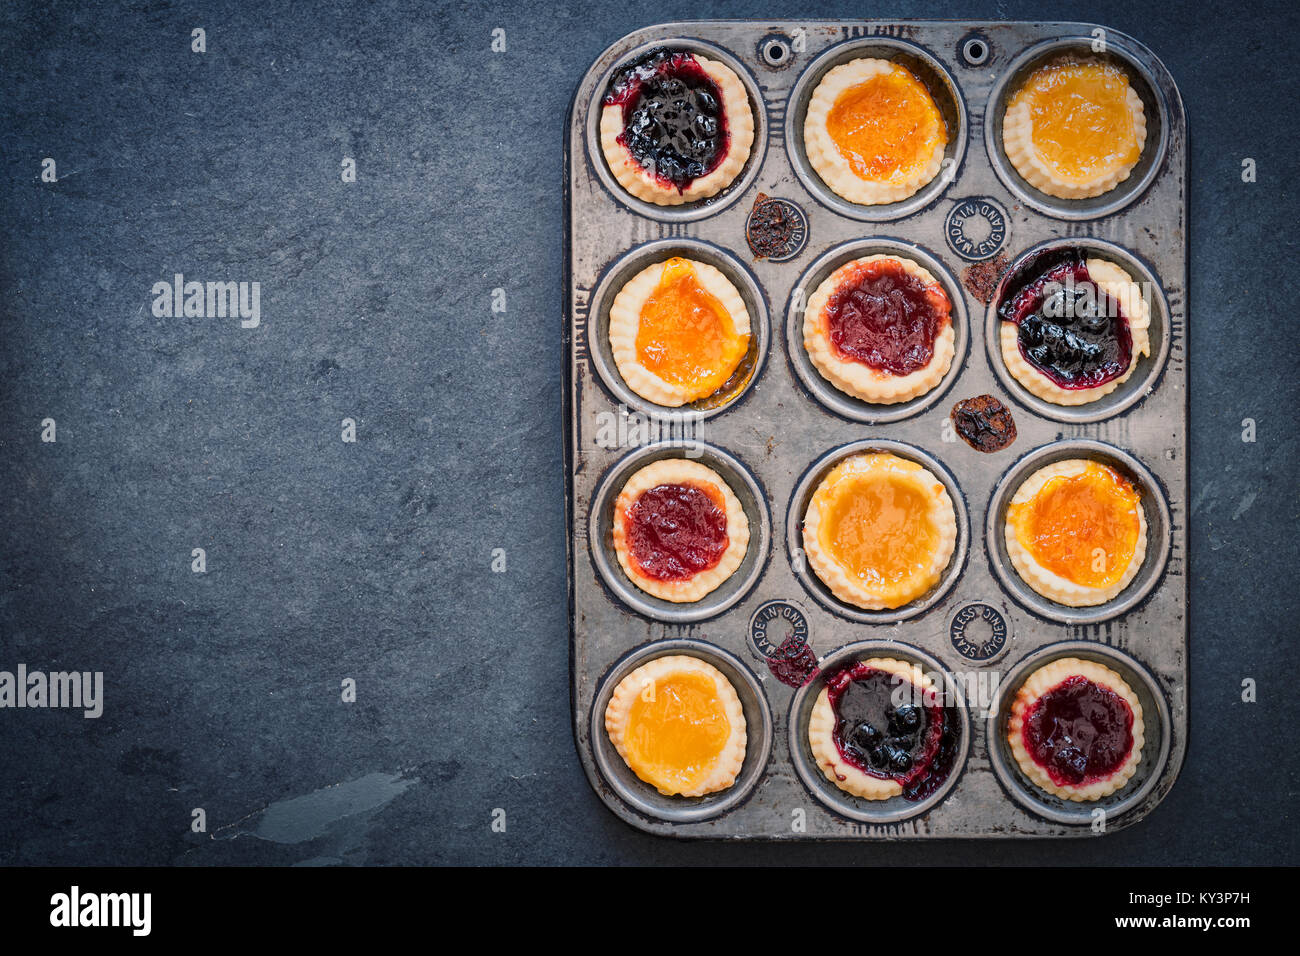 Cooked homemade jam tarts in a baking tray on slate. Vintage filter applied - Stock Image